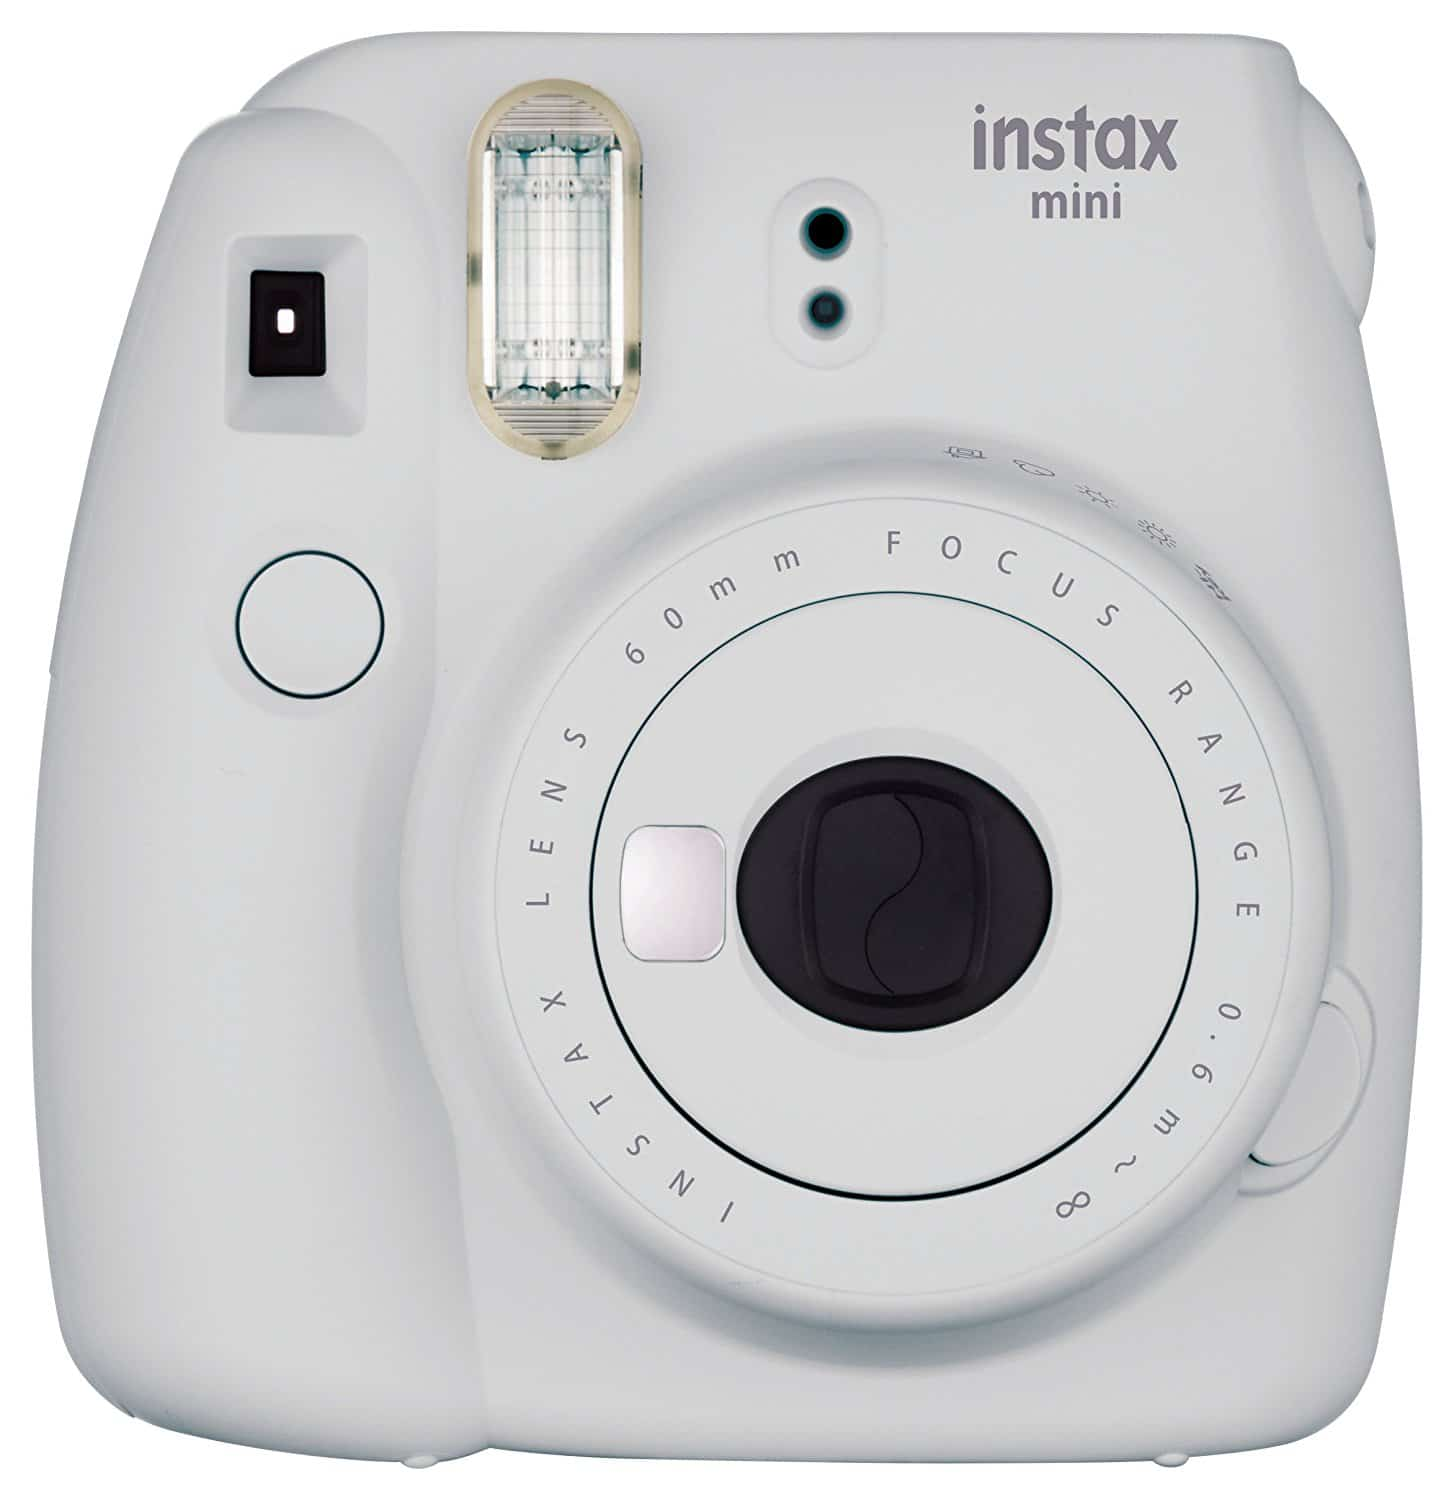 fuji instax camera for selfies